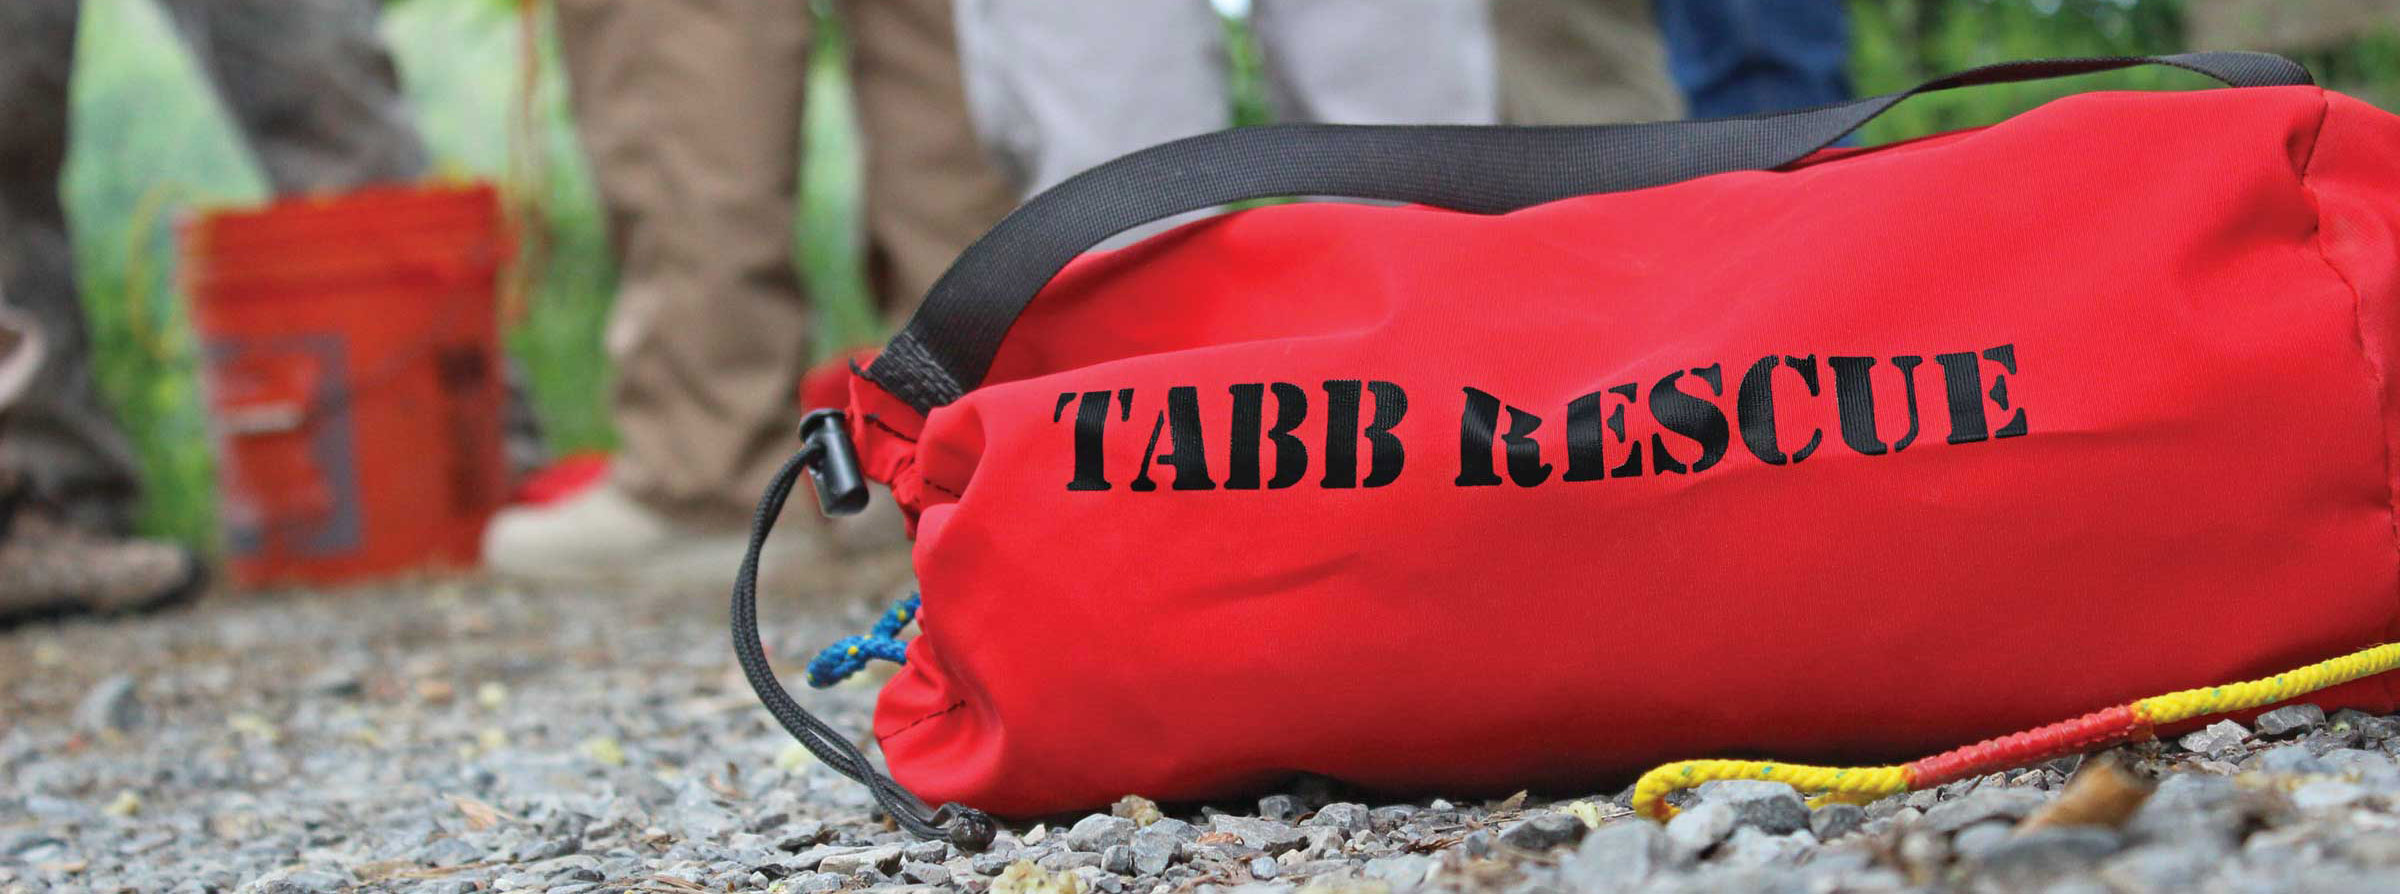 Immediate Deployment Rescue Rope System by Tabb Rescue Equipment